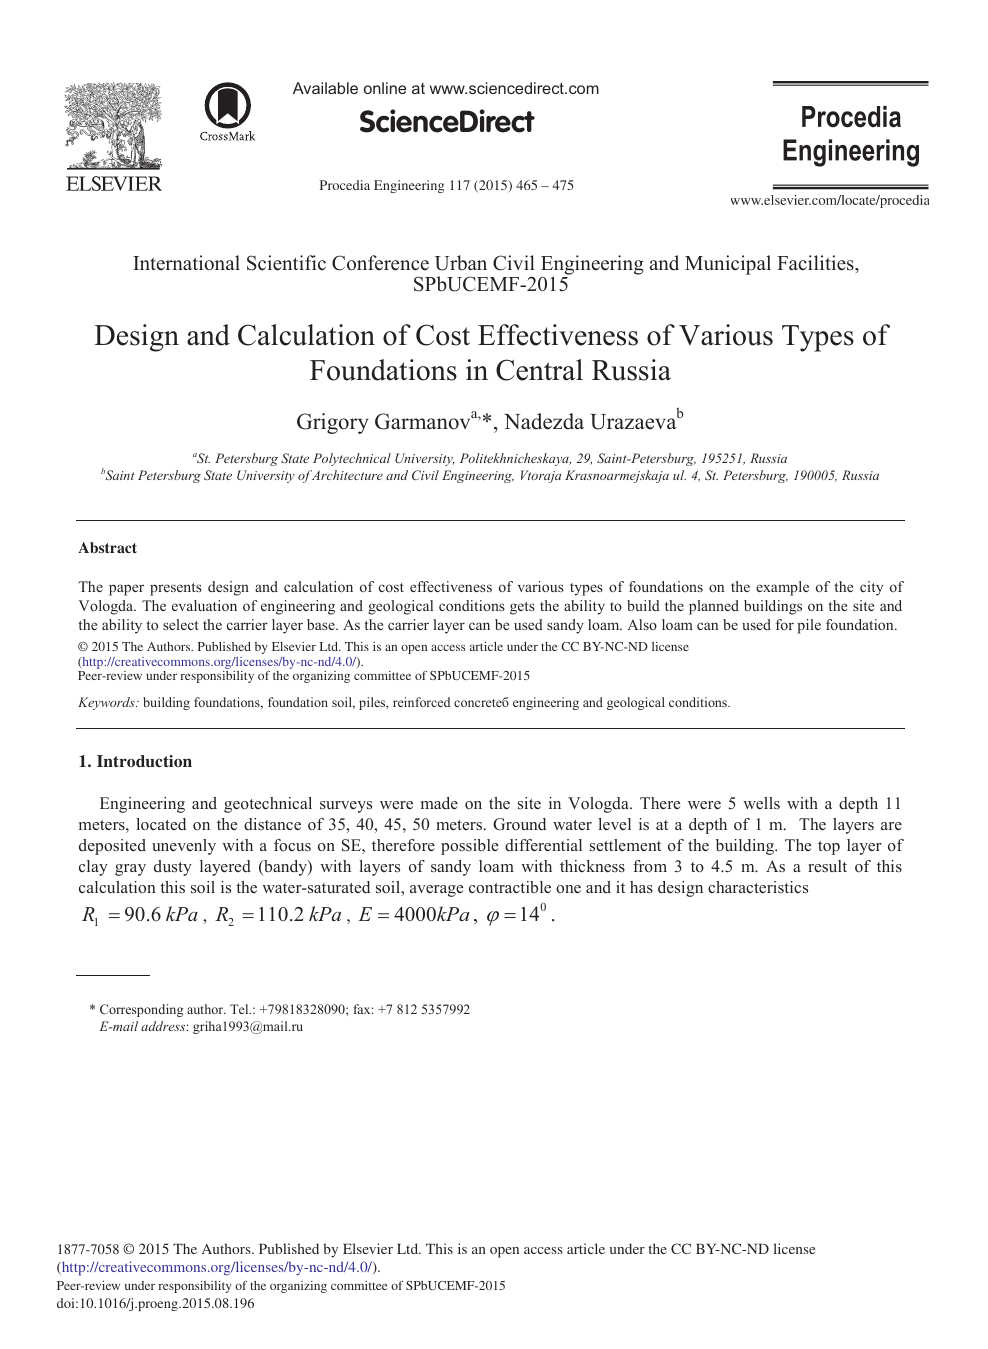 Design and Calculation of Cost Effectiveness of Various